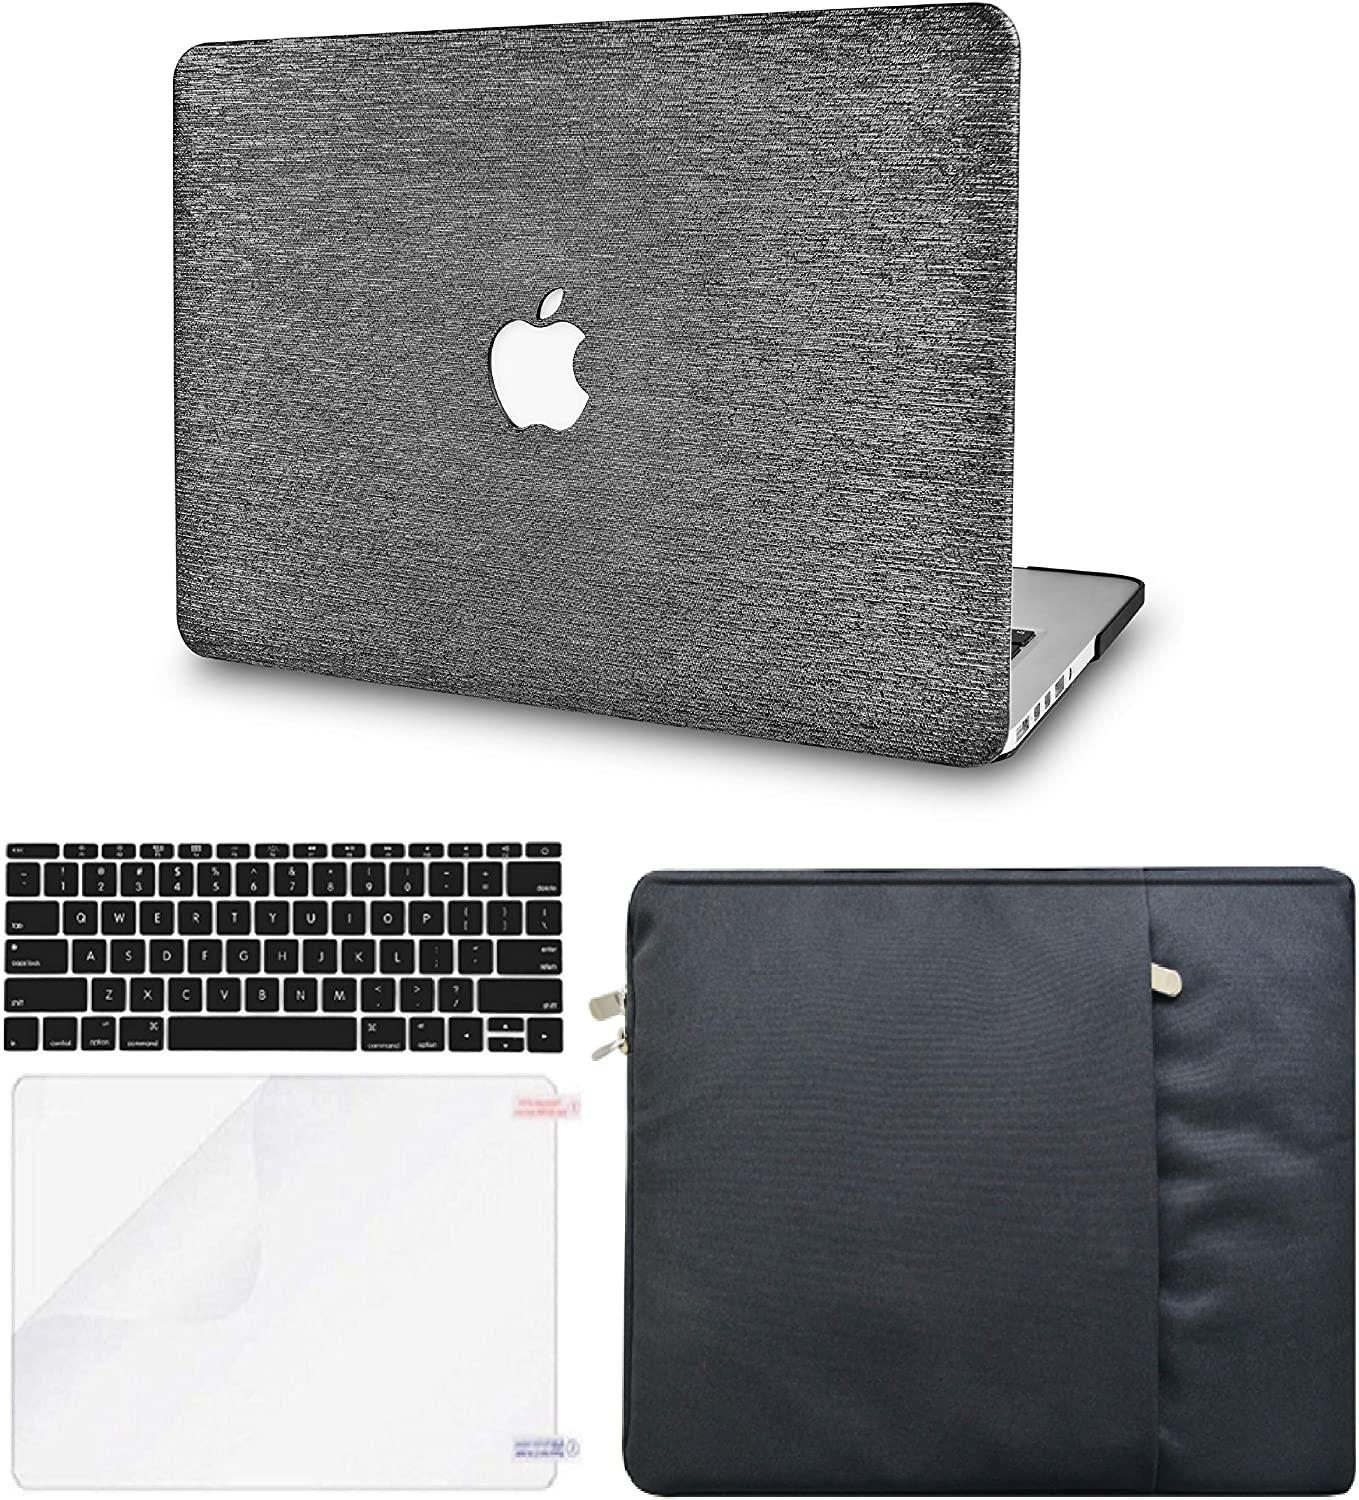 LuvCase 4 in 1 LaptopCase for MacBook Air 13 Inch(Touch ID)(2020) A2179 Retina Display HardShellCover, Sleeve, Keyboard Cover & Screen Protector (Silver Grey Leather)